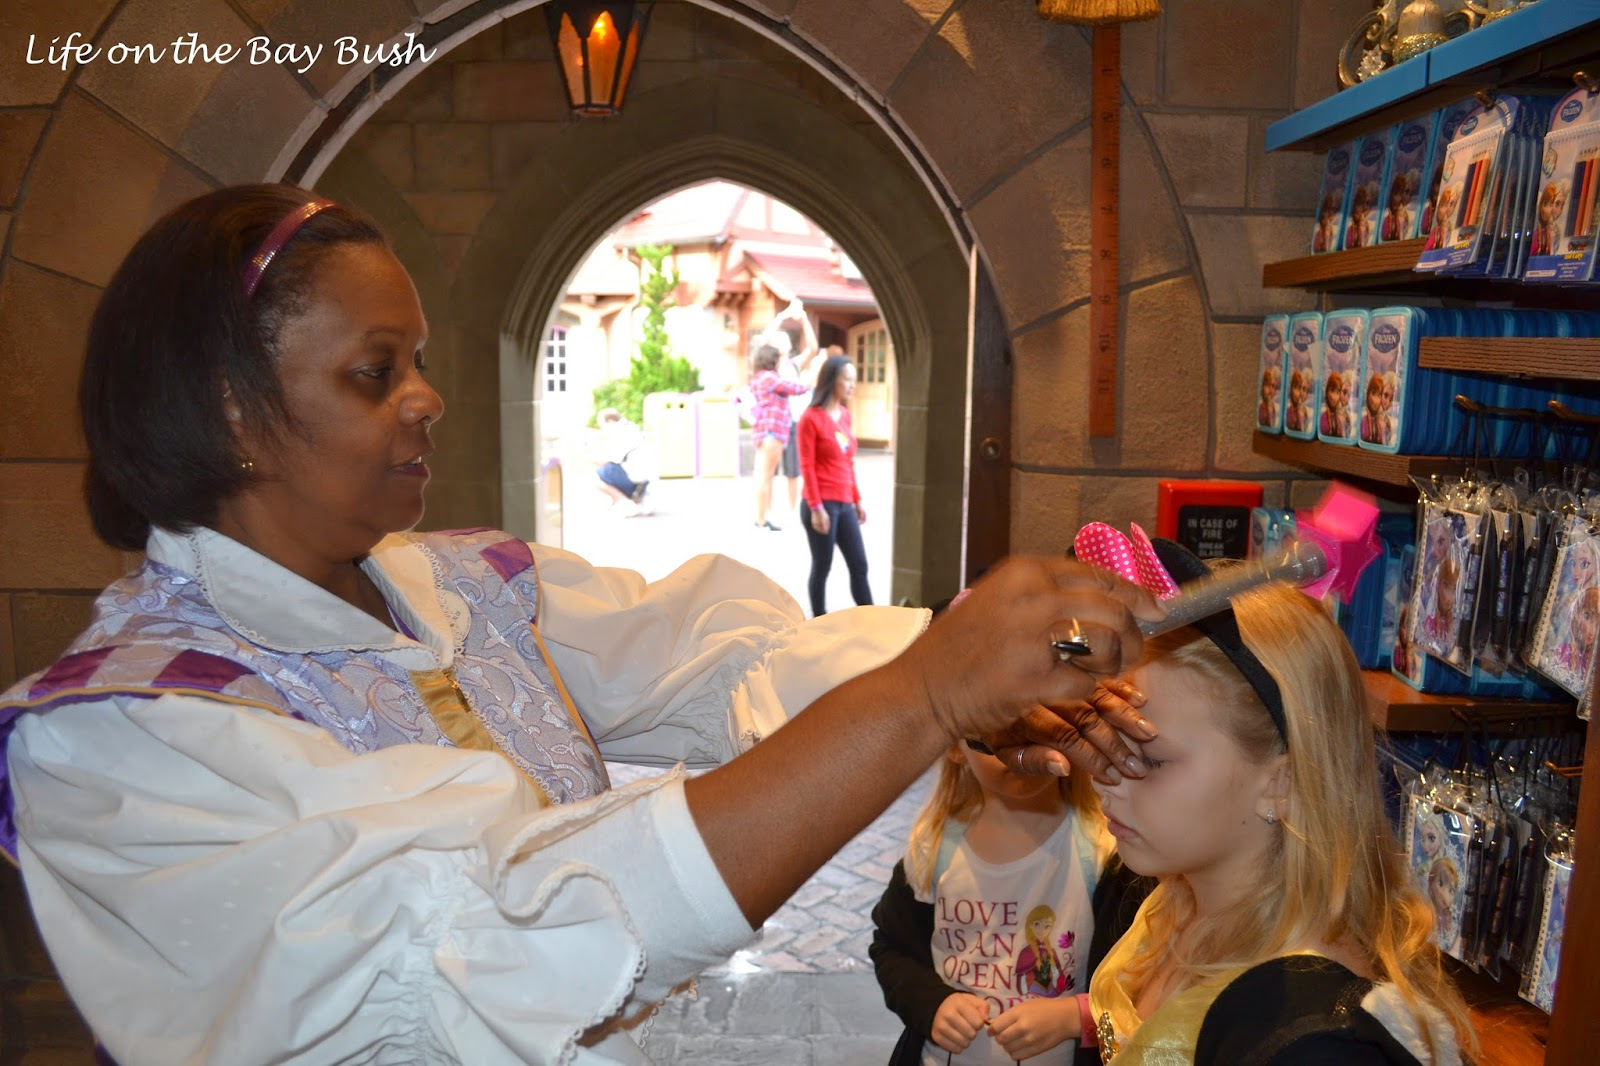 Getting Pixie Dust at the Magic Kingdom